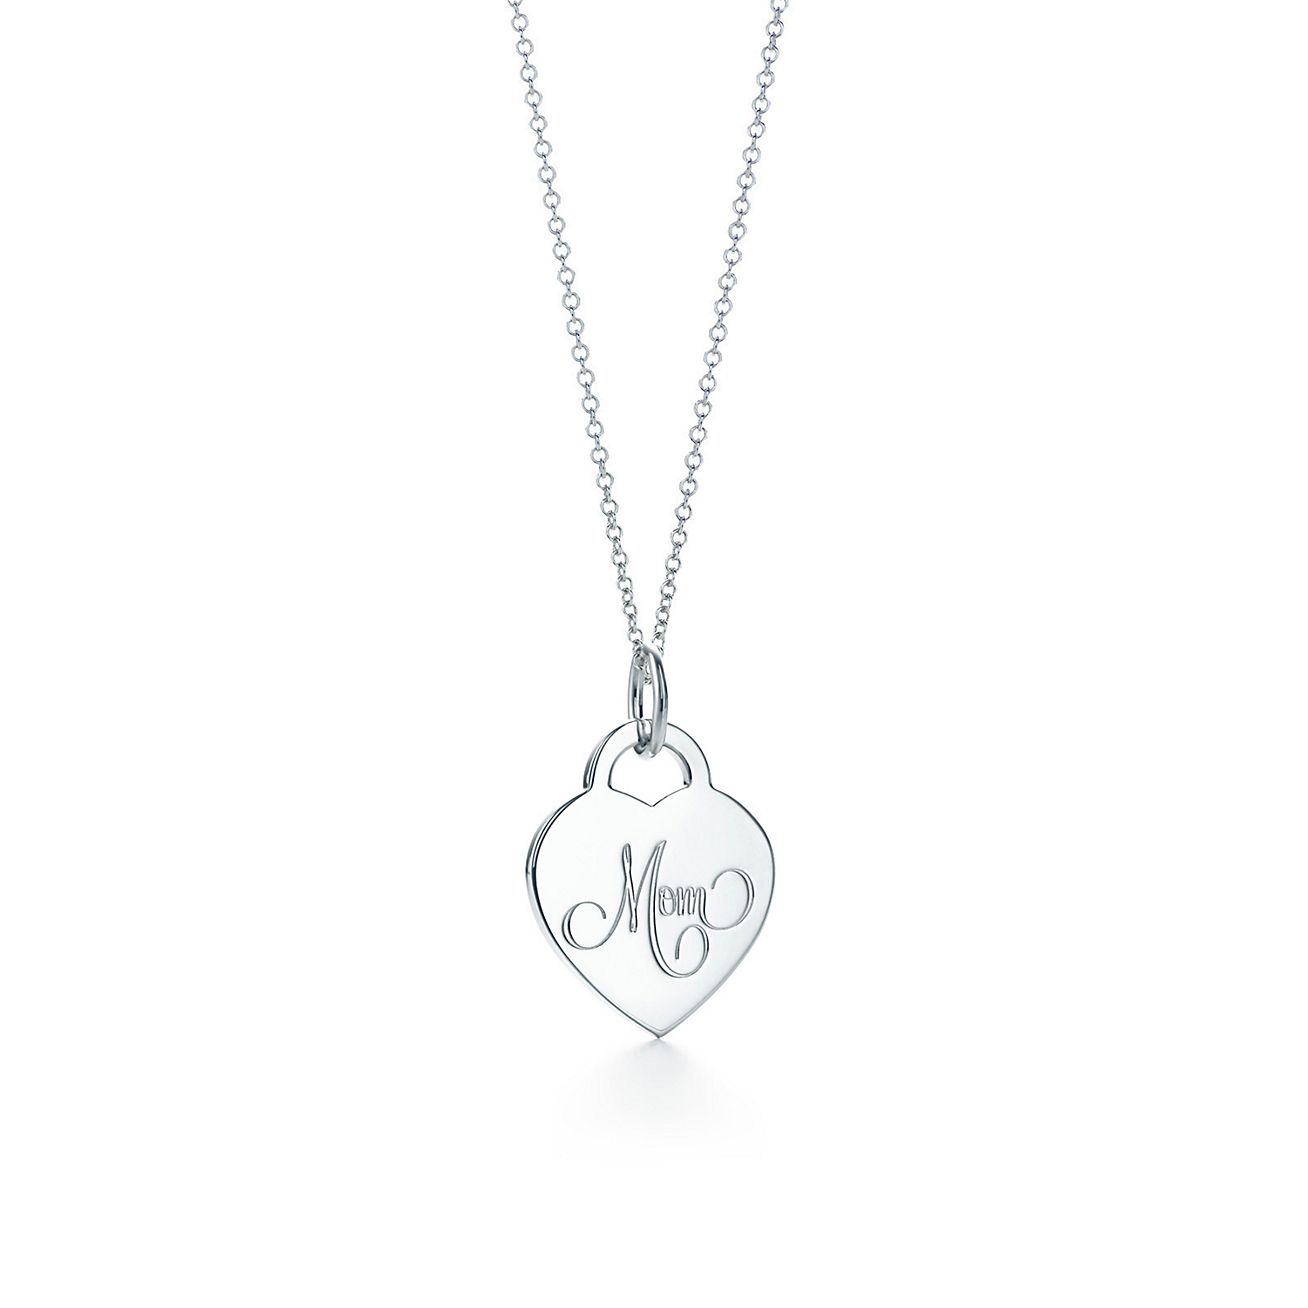 Mom heart tag charm in sterling silver on a chain tiffany co mom heart tag charm and chain aloadofball Images